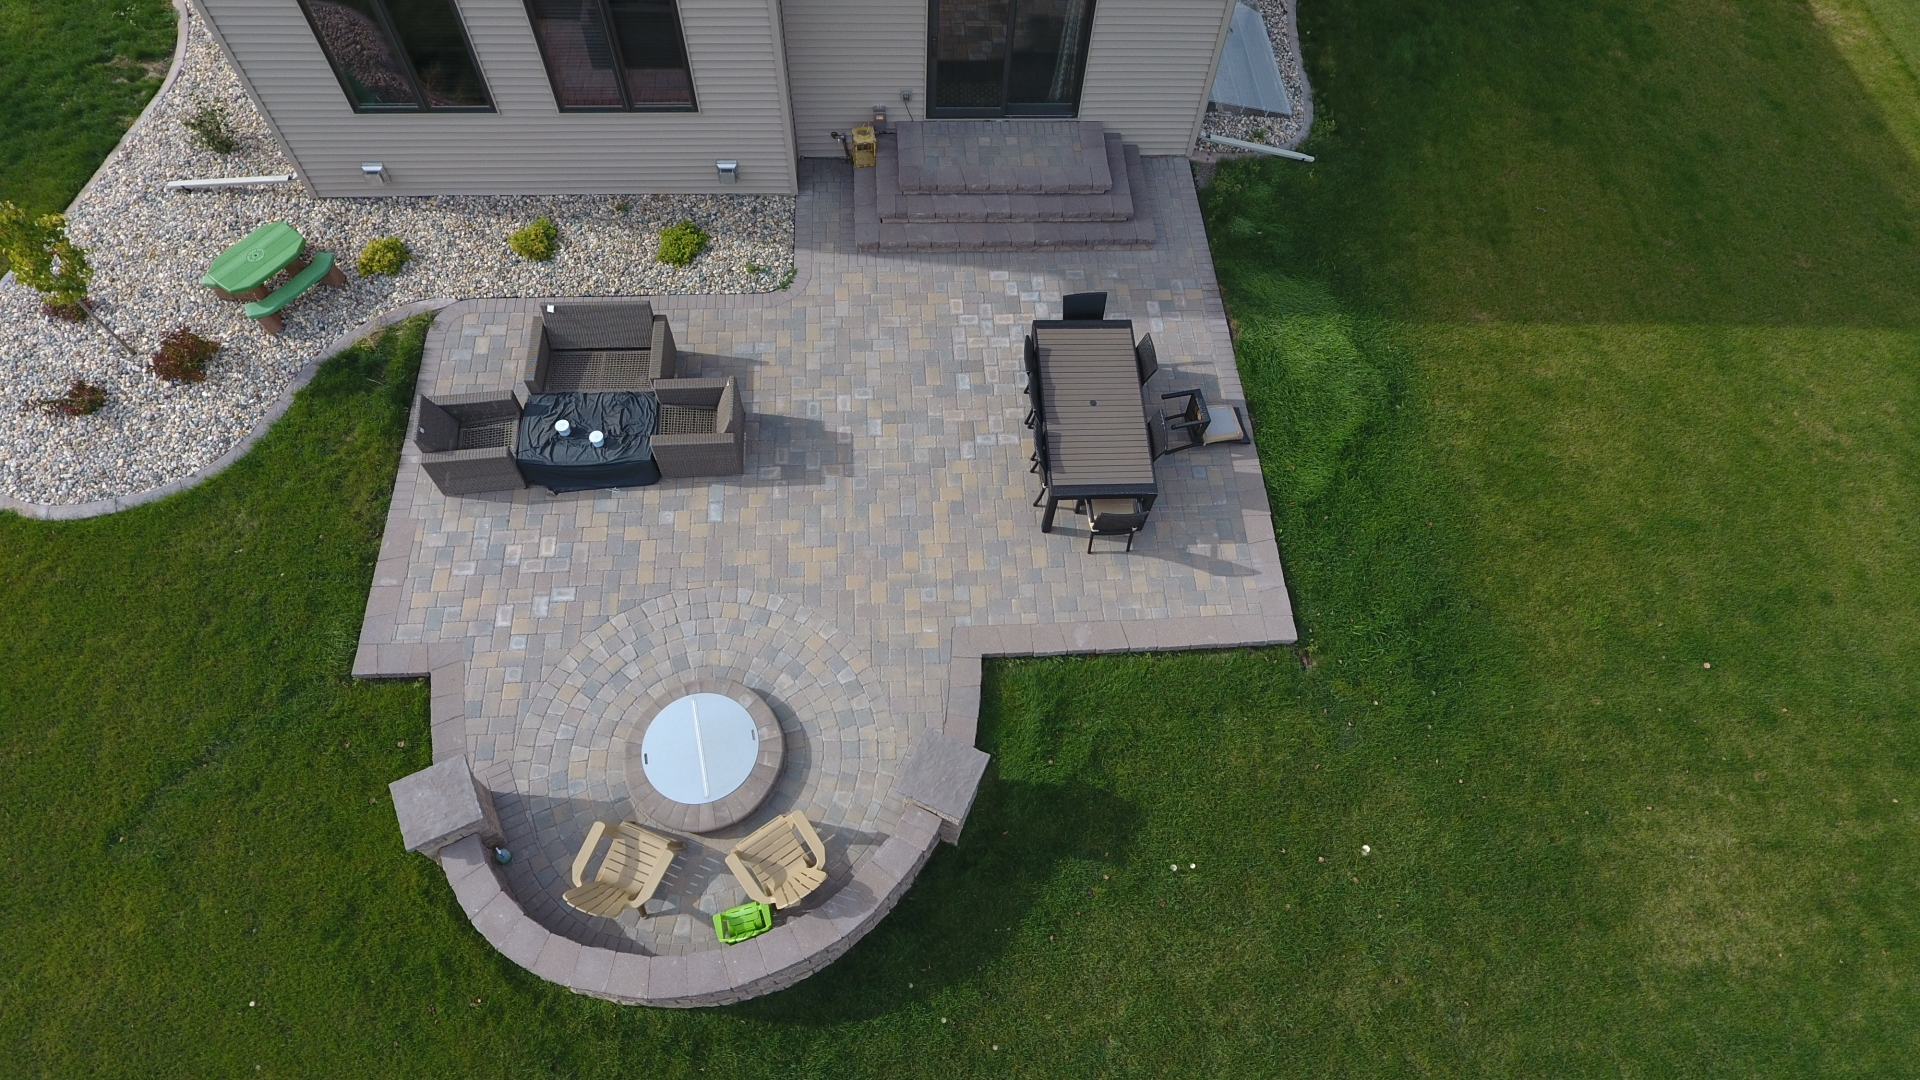 Backyard Fire Pit with Seat Wall and Paver Patio - Oasis ... on Paver Patio Designs With Fire Pit id=47433